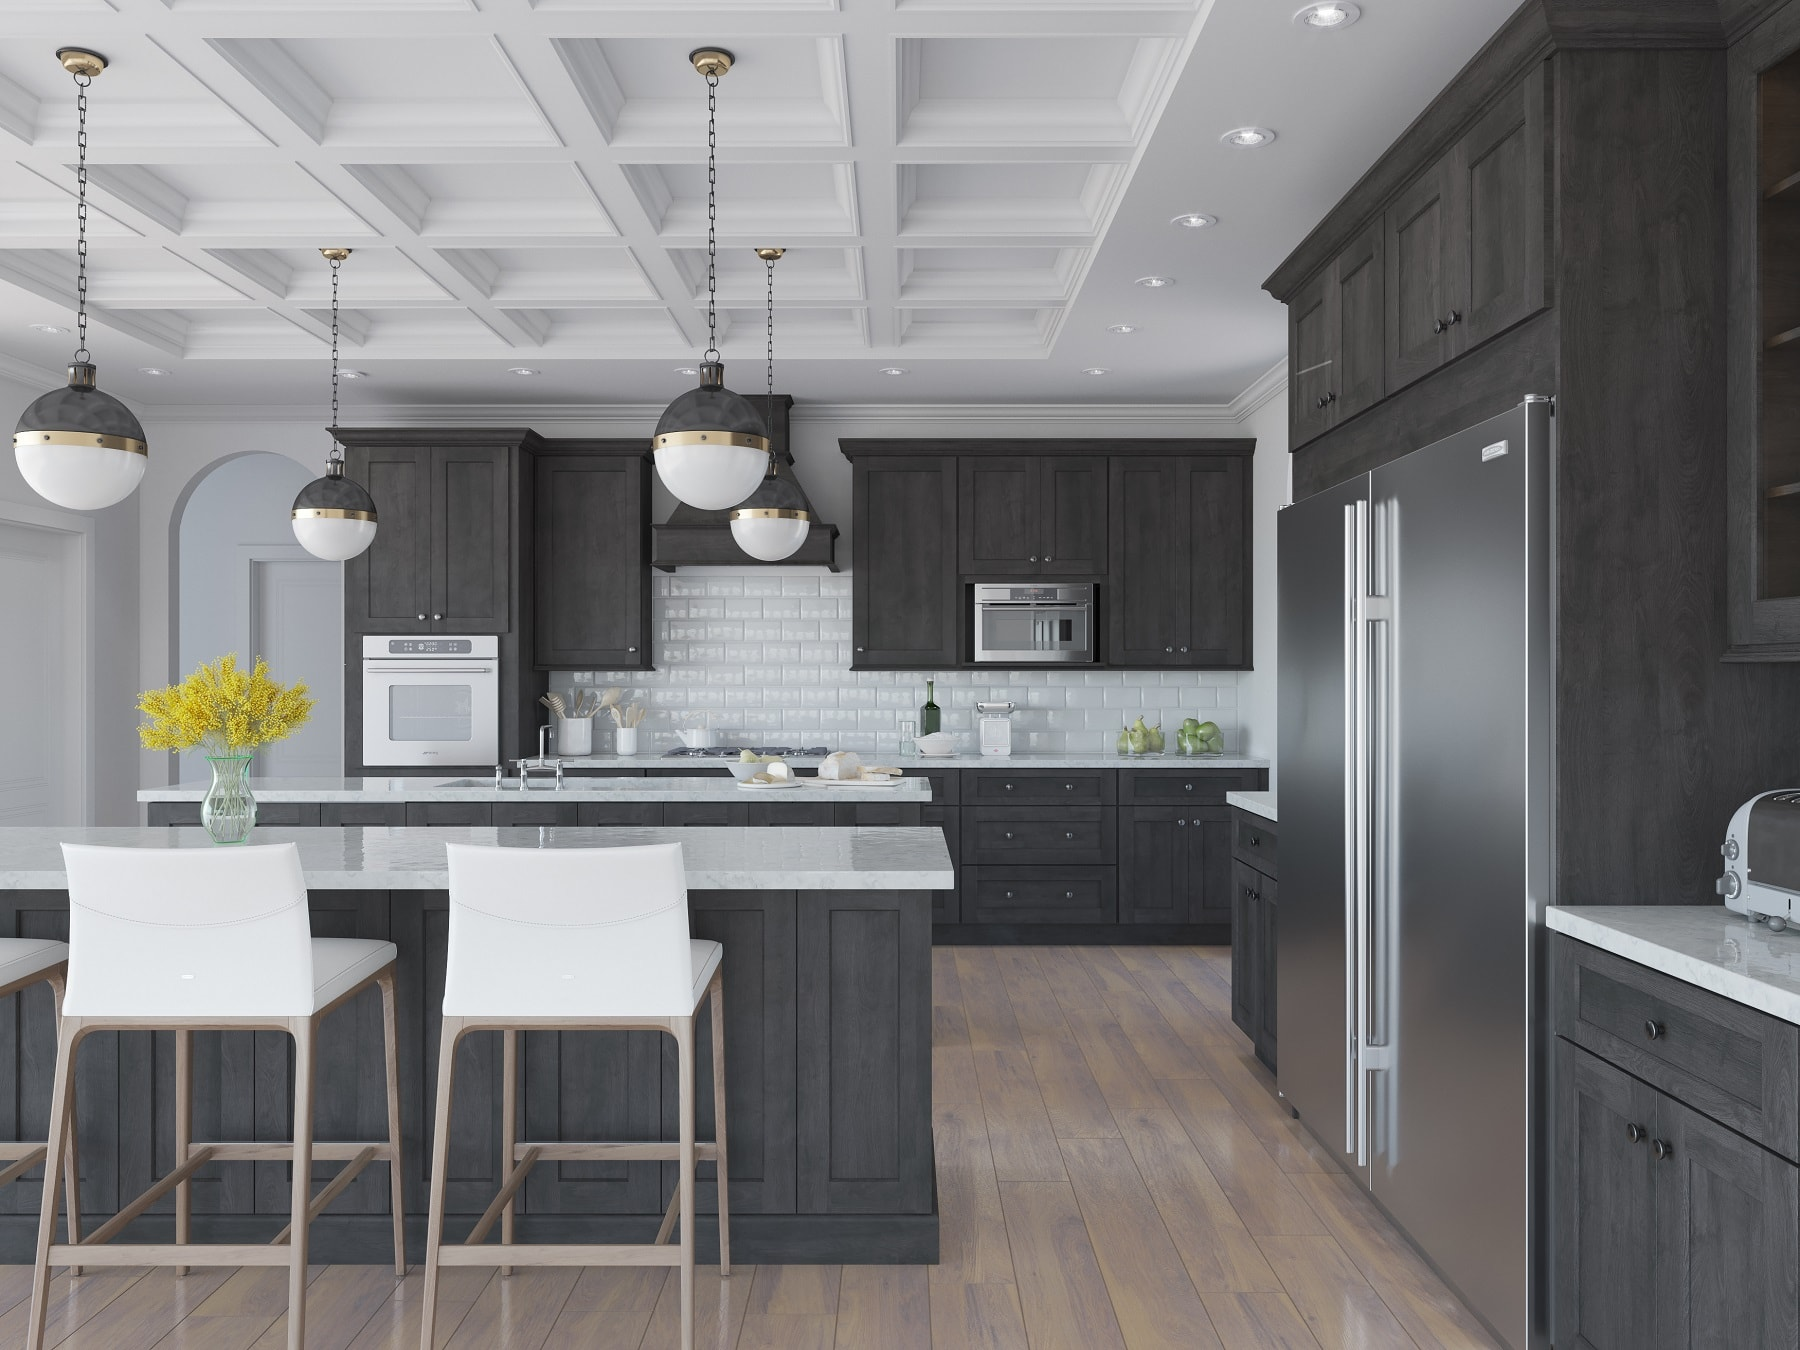 Townsquare-grey-kitchen